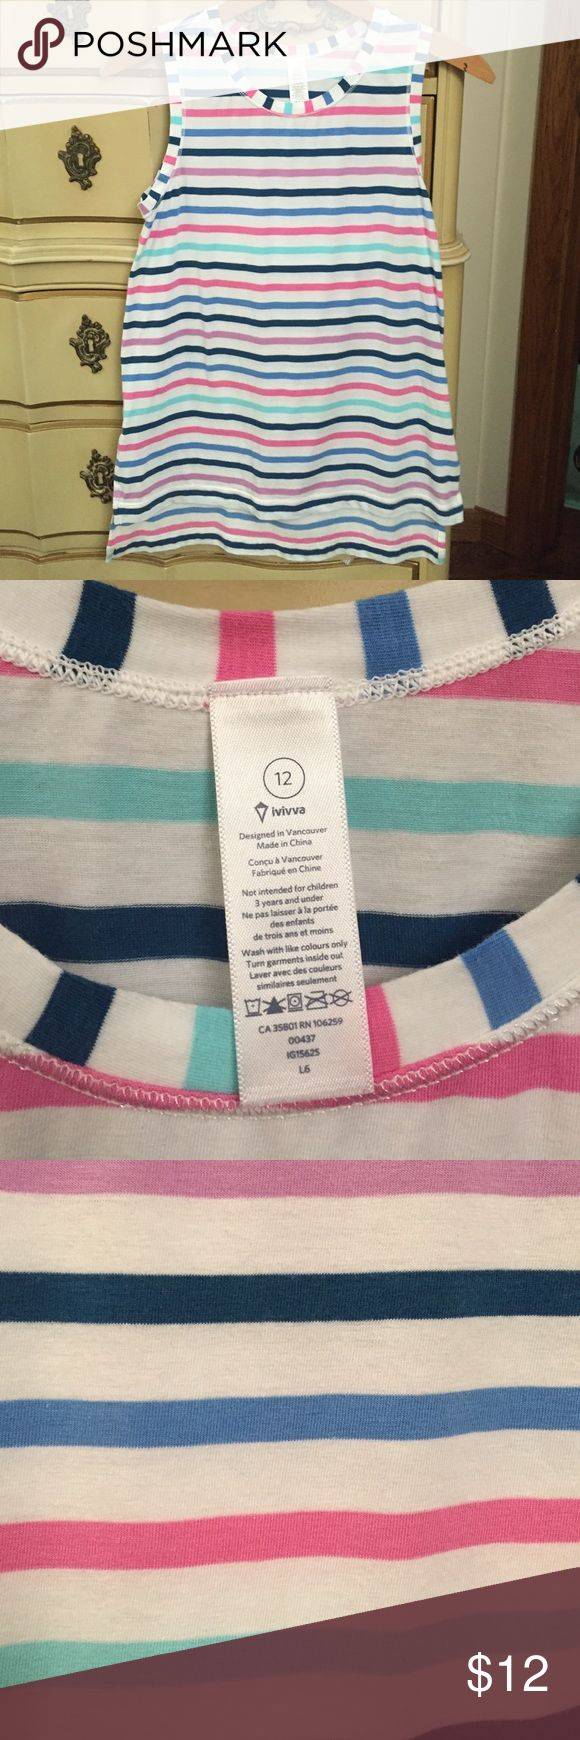 Iviva (Lululemon) striped sleeveless shirt Worn twice and in great condition. Iviva is Lululemon's kids' line. Vented on the sides and the back of the shirt is a couple inches longer than the front. NO TRADES and thanks for looking! Iviva Tops Muscle Tees